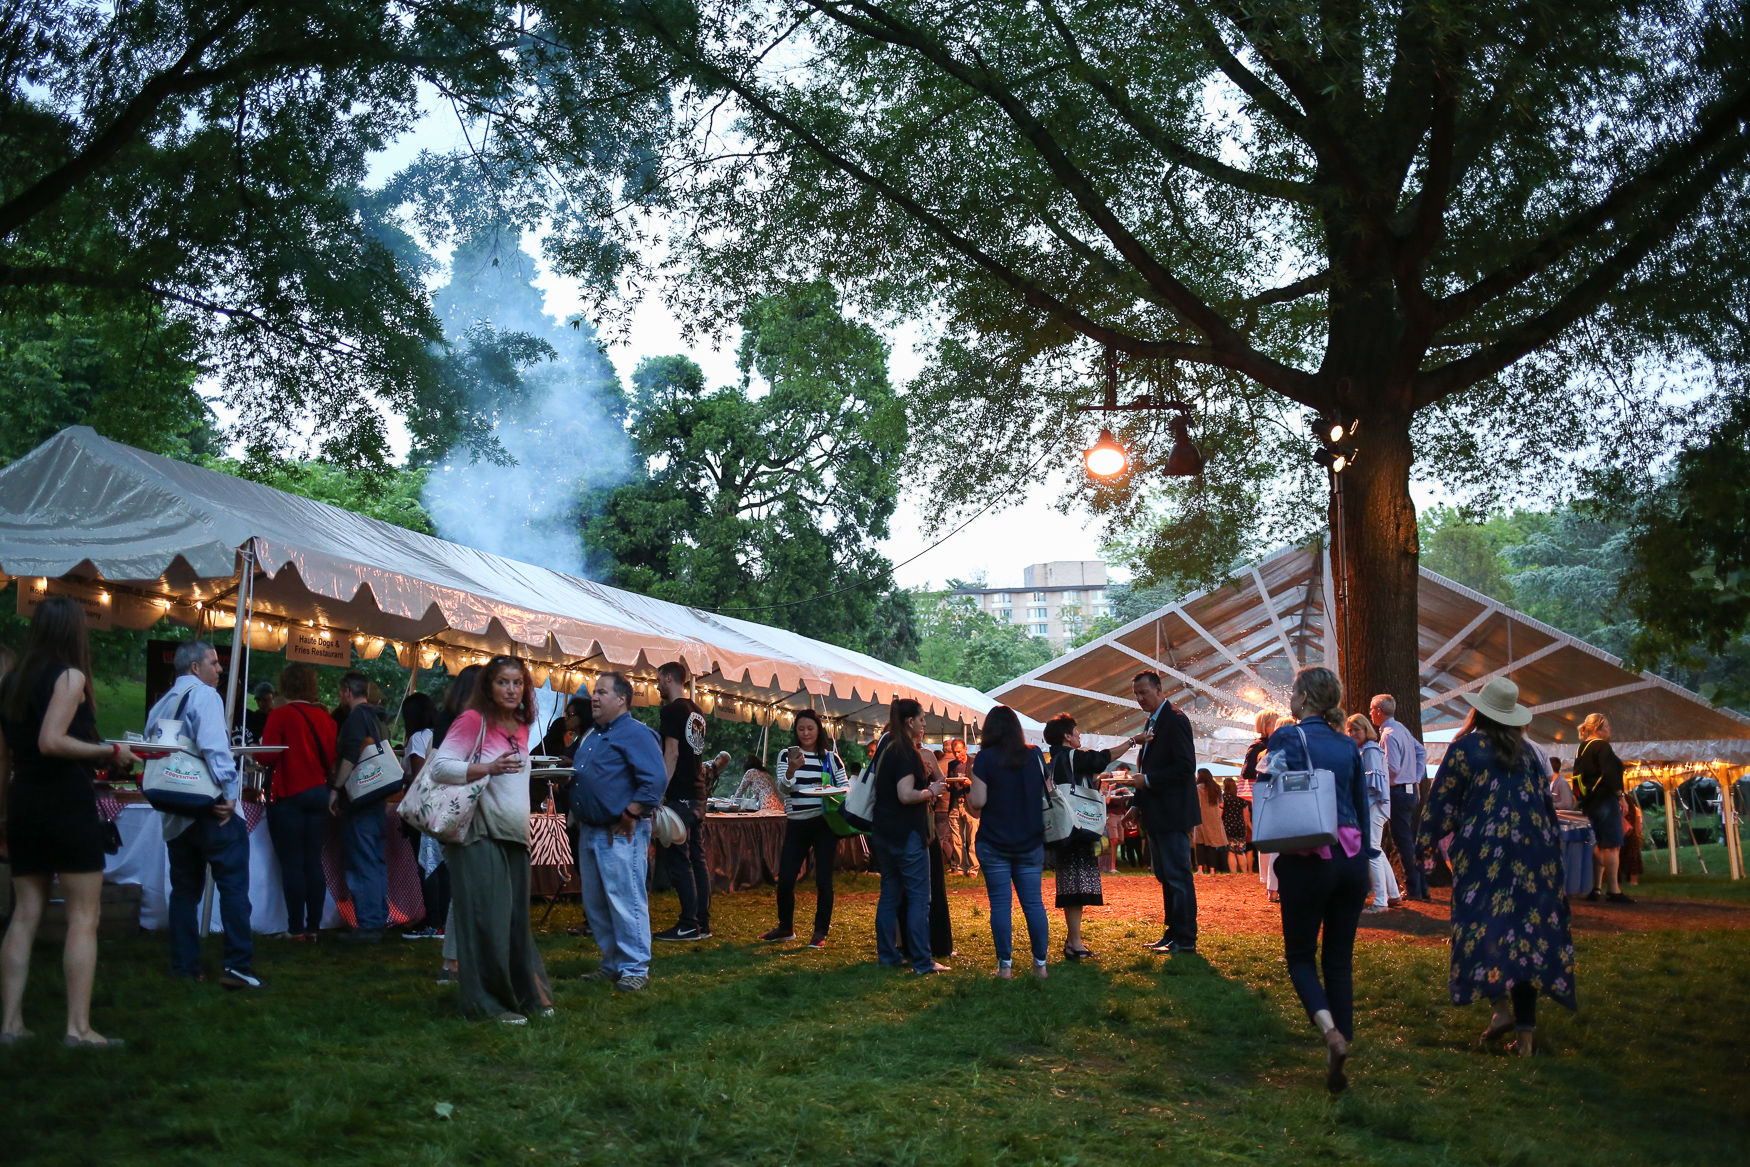 Zoofari brought together 74 restaurants and thousands of foodies and animal-lovers for the annual food-and-drink festival at the Smithsonian National Zoo on May 16. The after-hours fun raises money for the zoo and its conservation efforts while raising awareness about at-risk wildlife. The night included a silent auction, life music, the chance to see wildlife that's more active at sunset and plenty of delicious food and drinks.{ }{ }(Amanda Andrade-Rhoades/DC Refined)